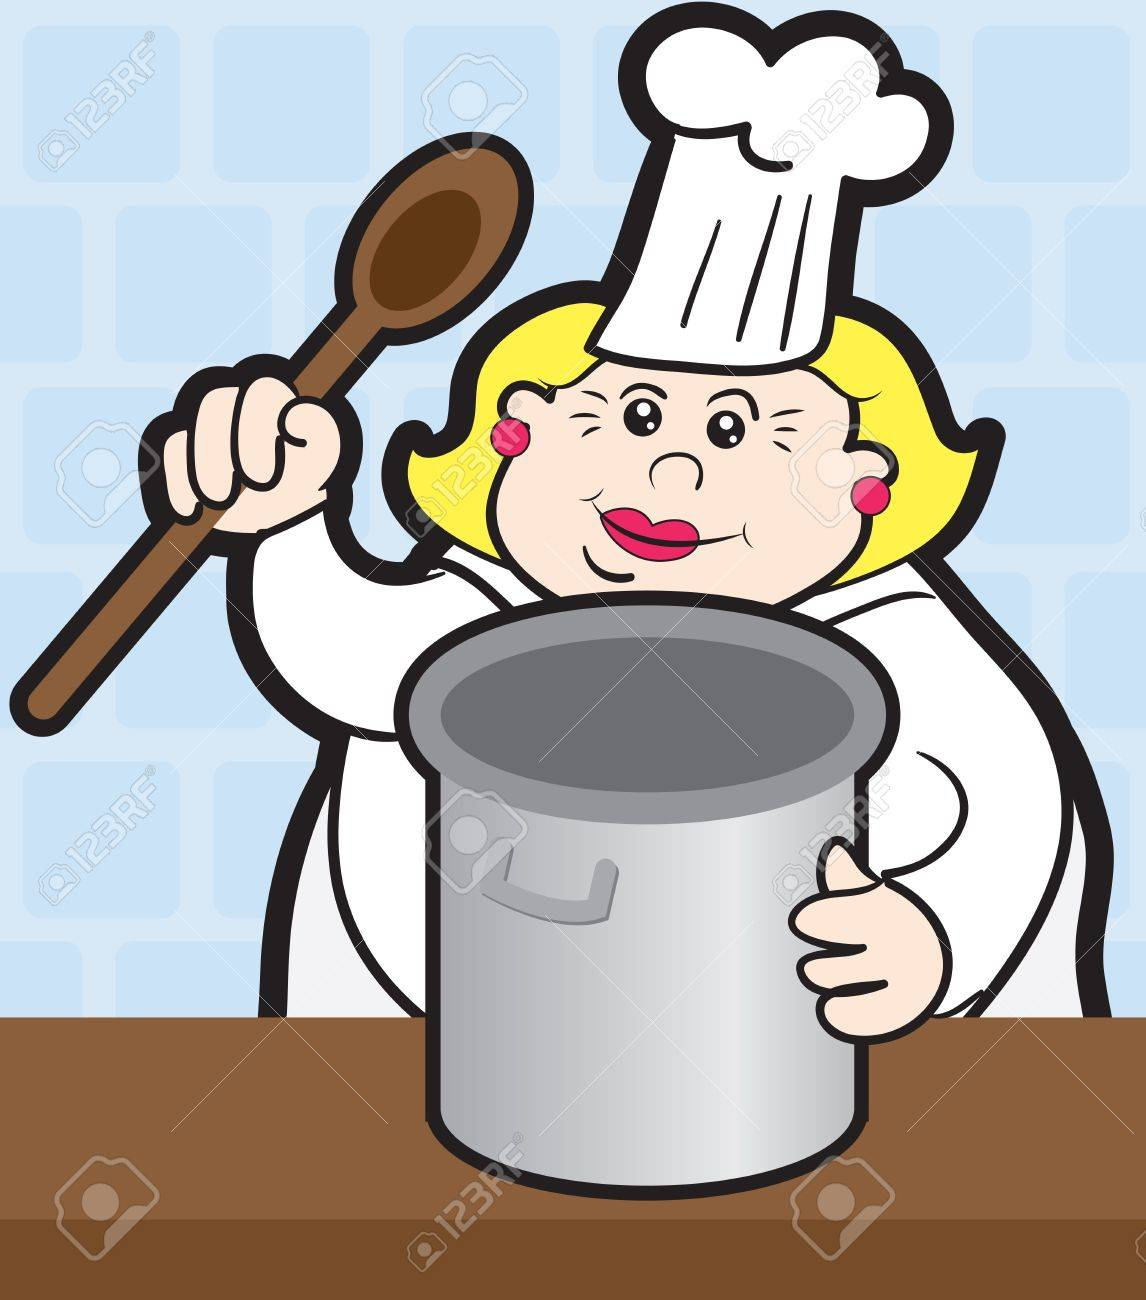 Woman chef cooking with large pot Stock Vector - 15544544